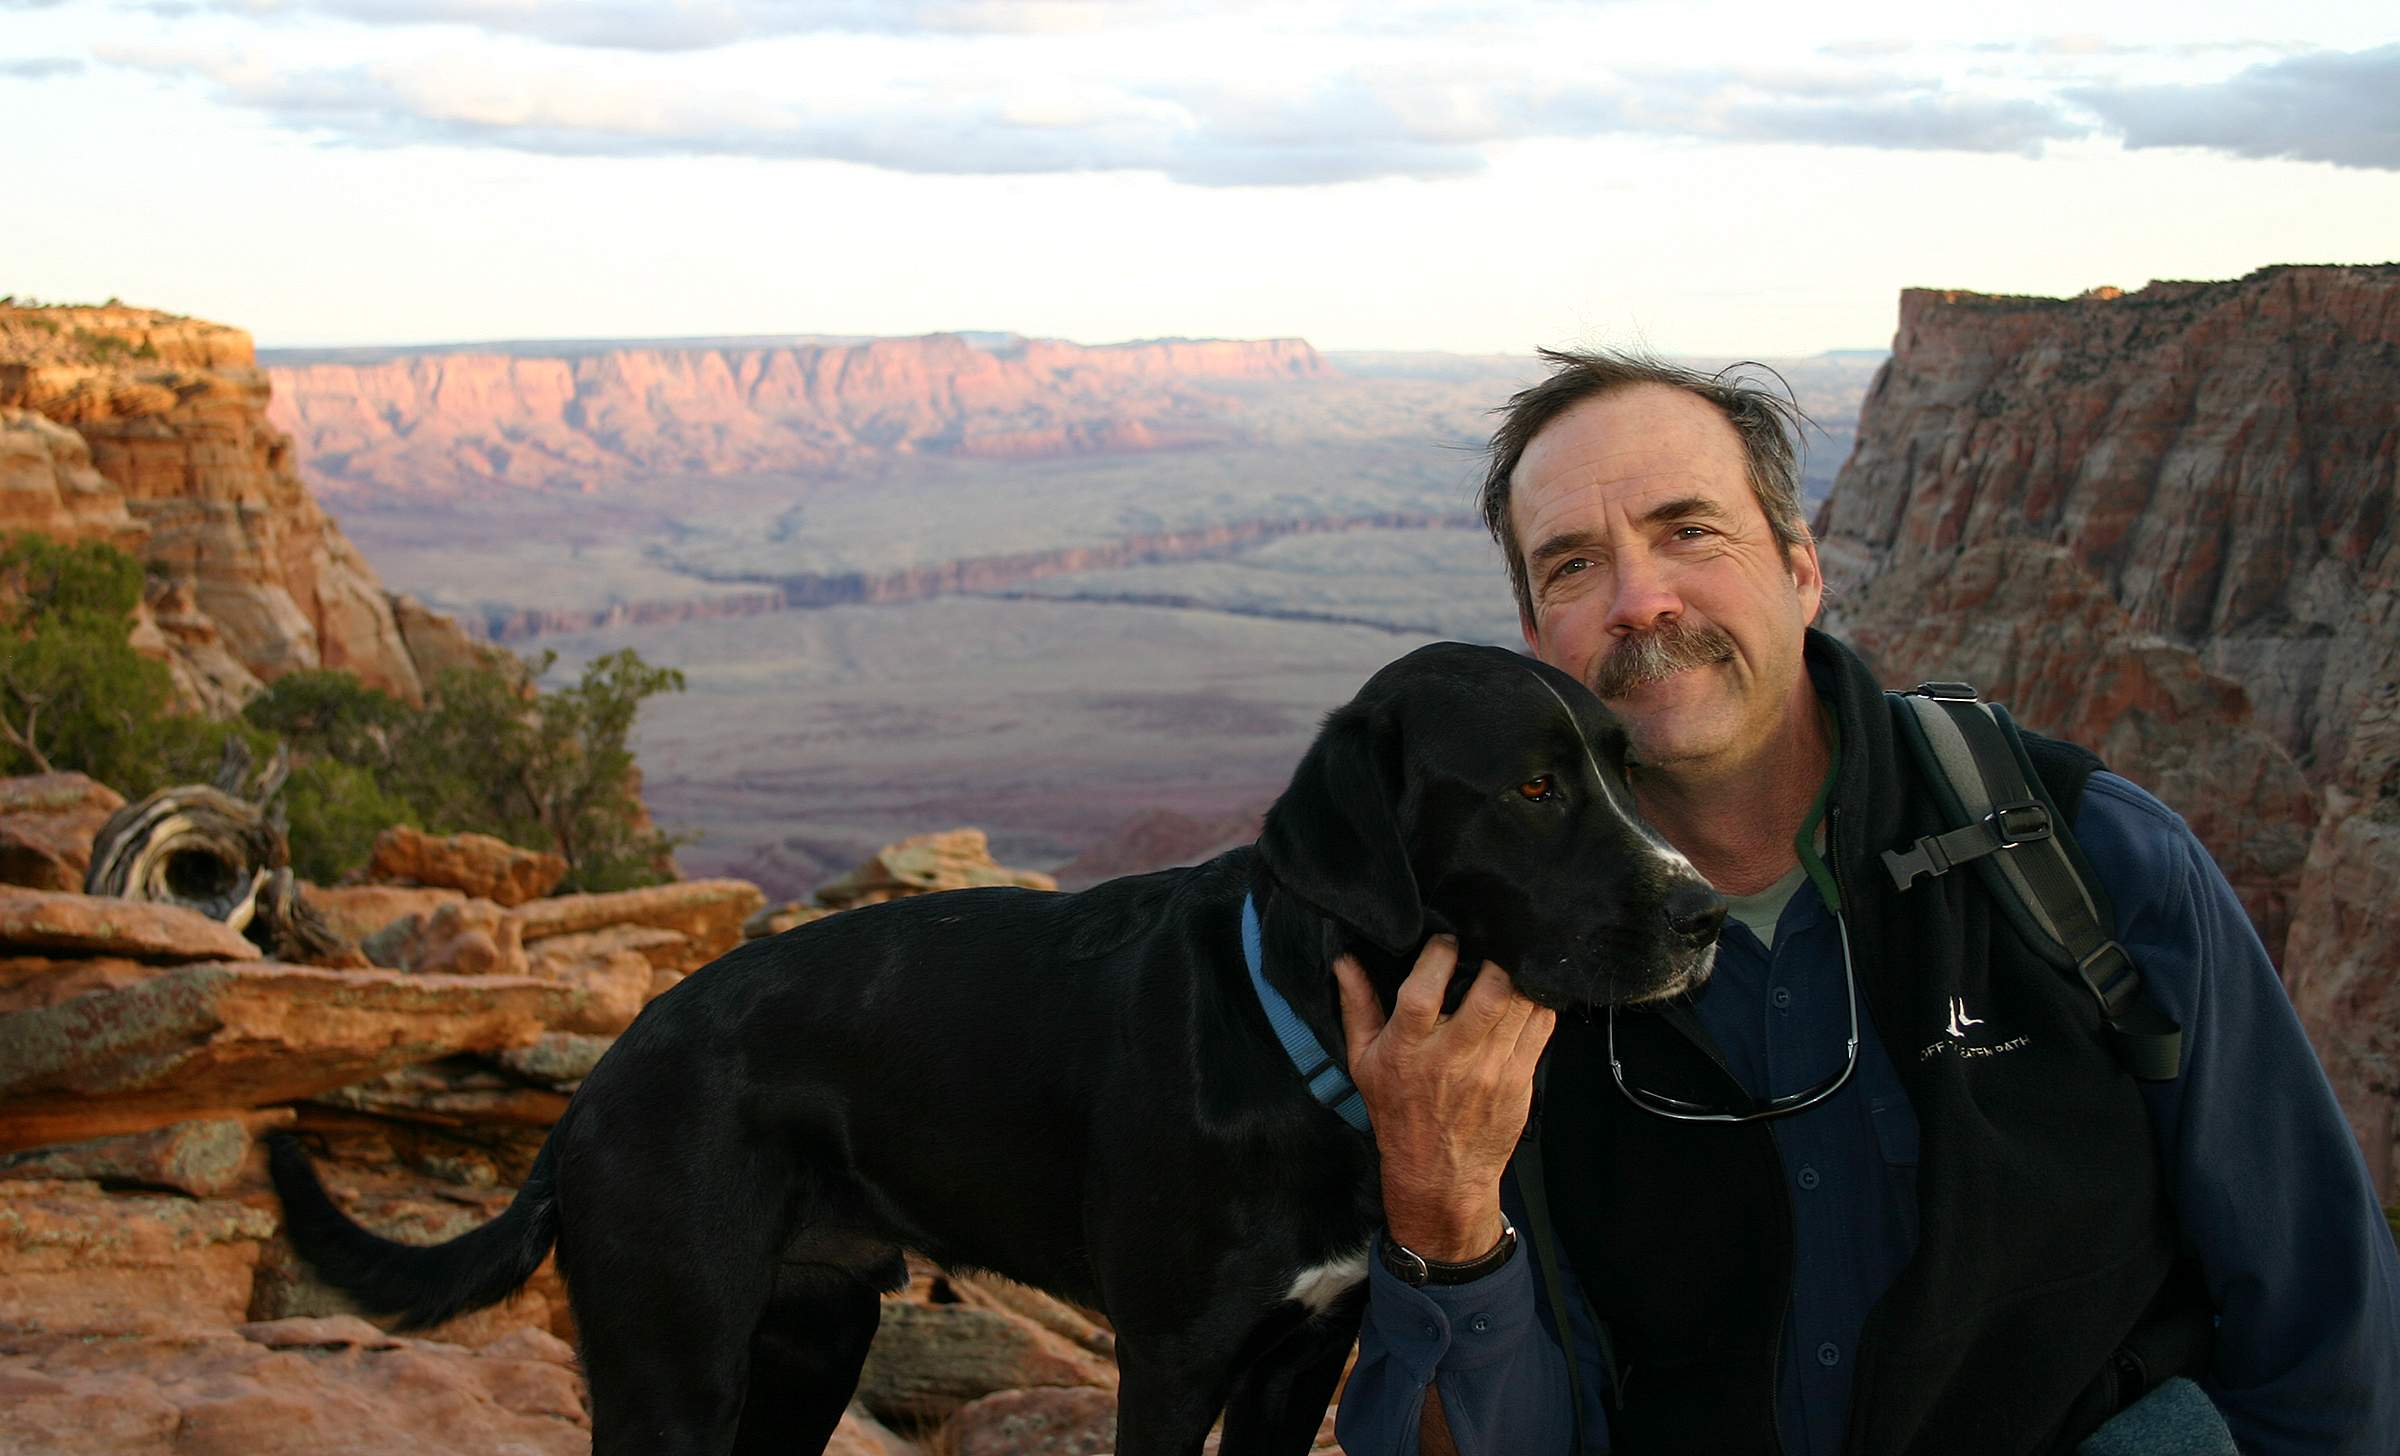 For 15 years, my dog, Finn, was a beloved companion, hiking partner